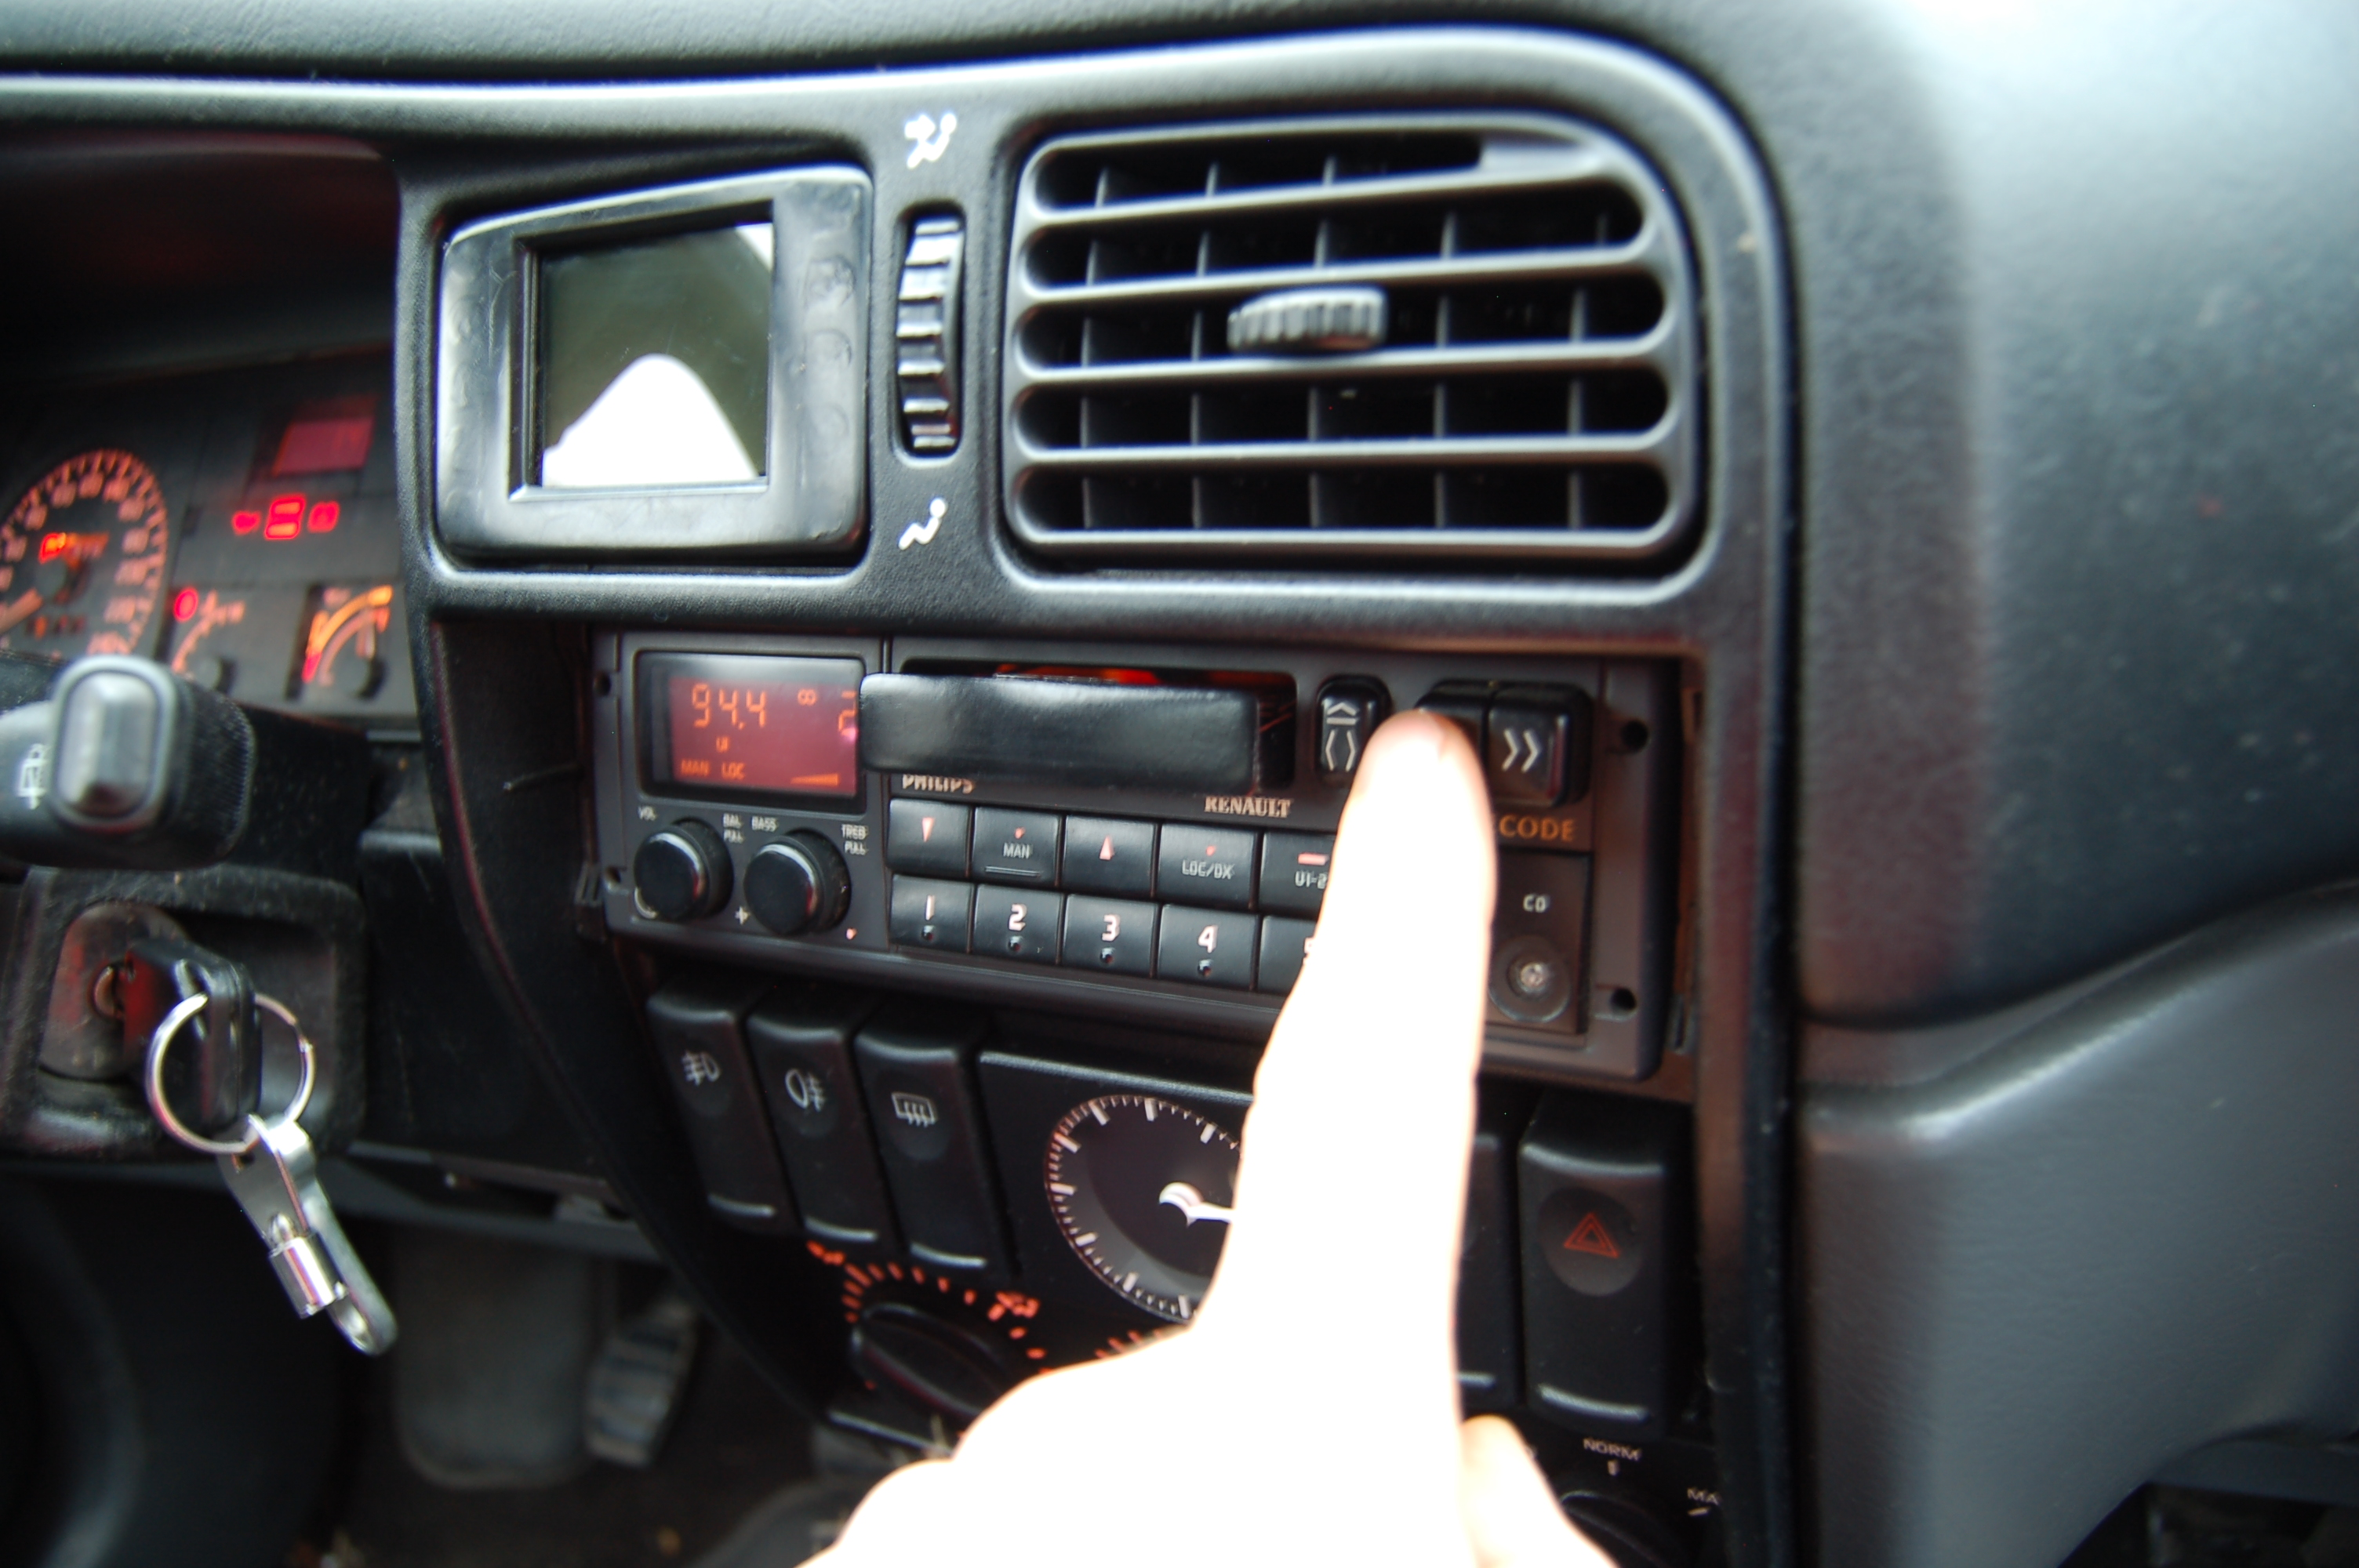 Picture of Autoradio Cassette Player  [ipod Hack]